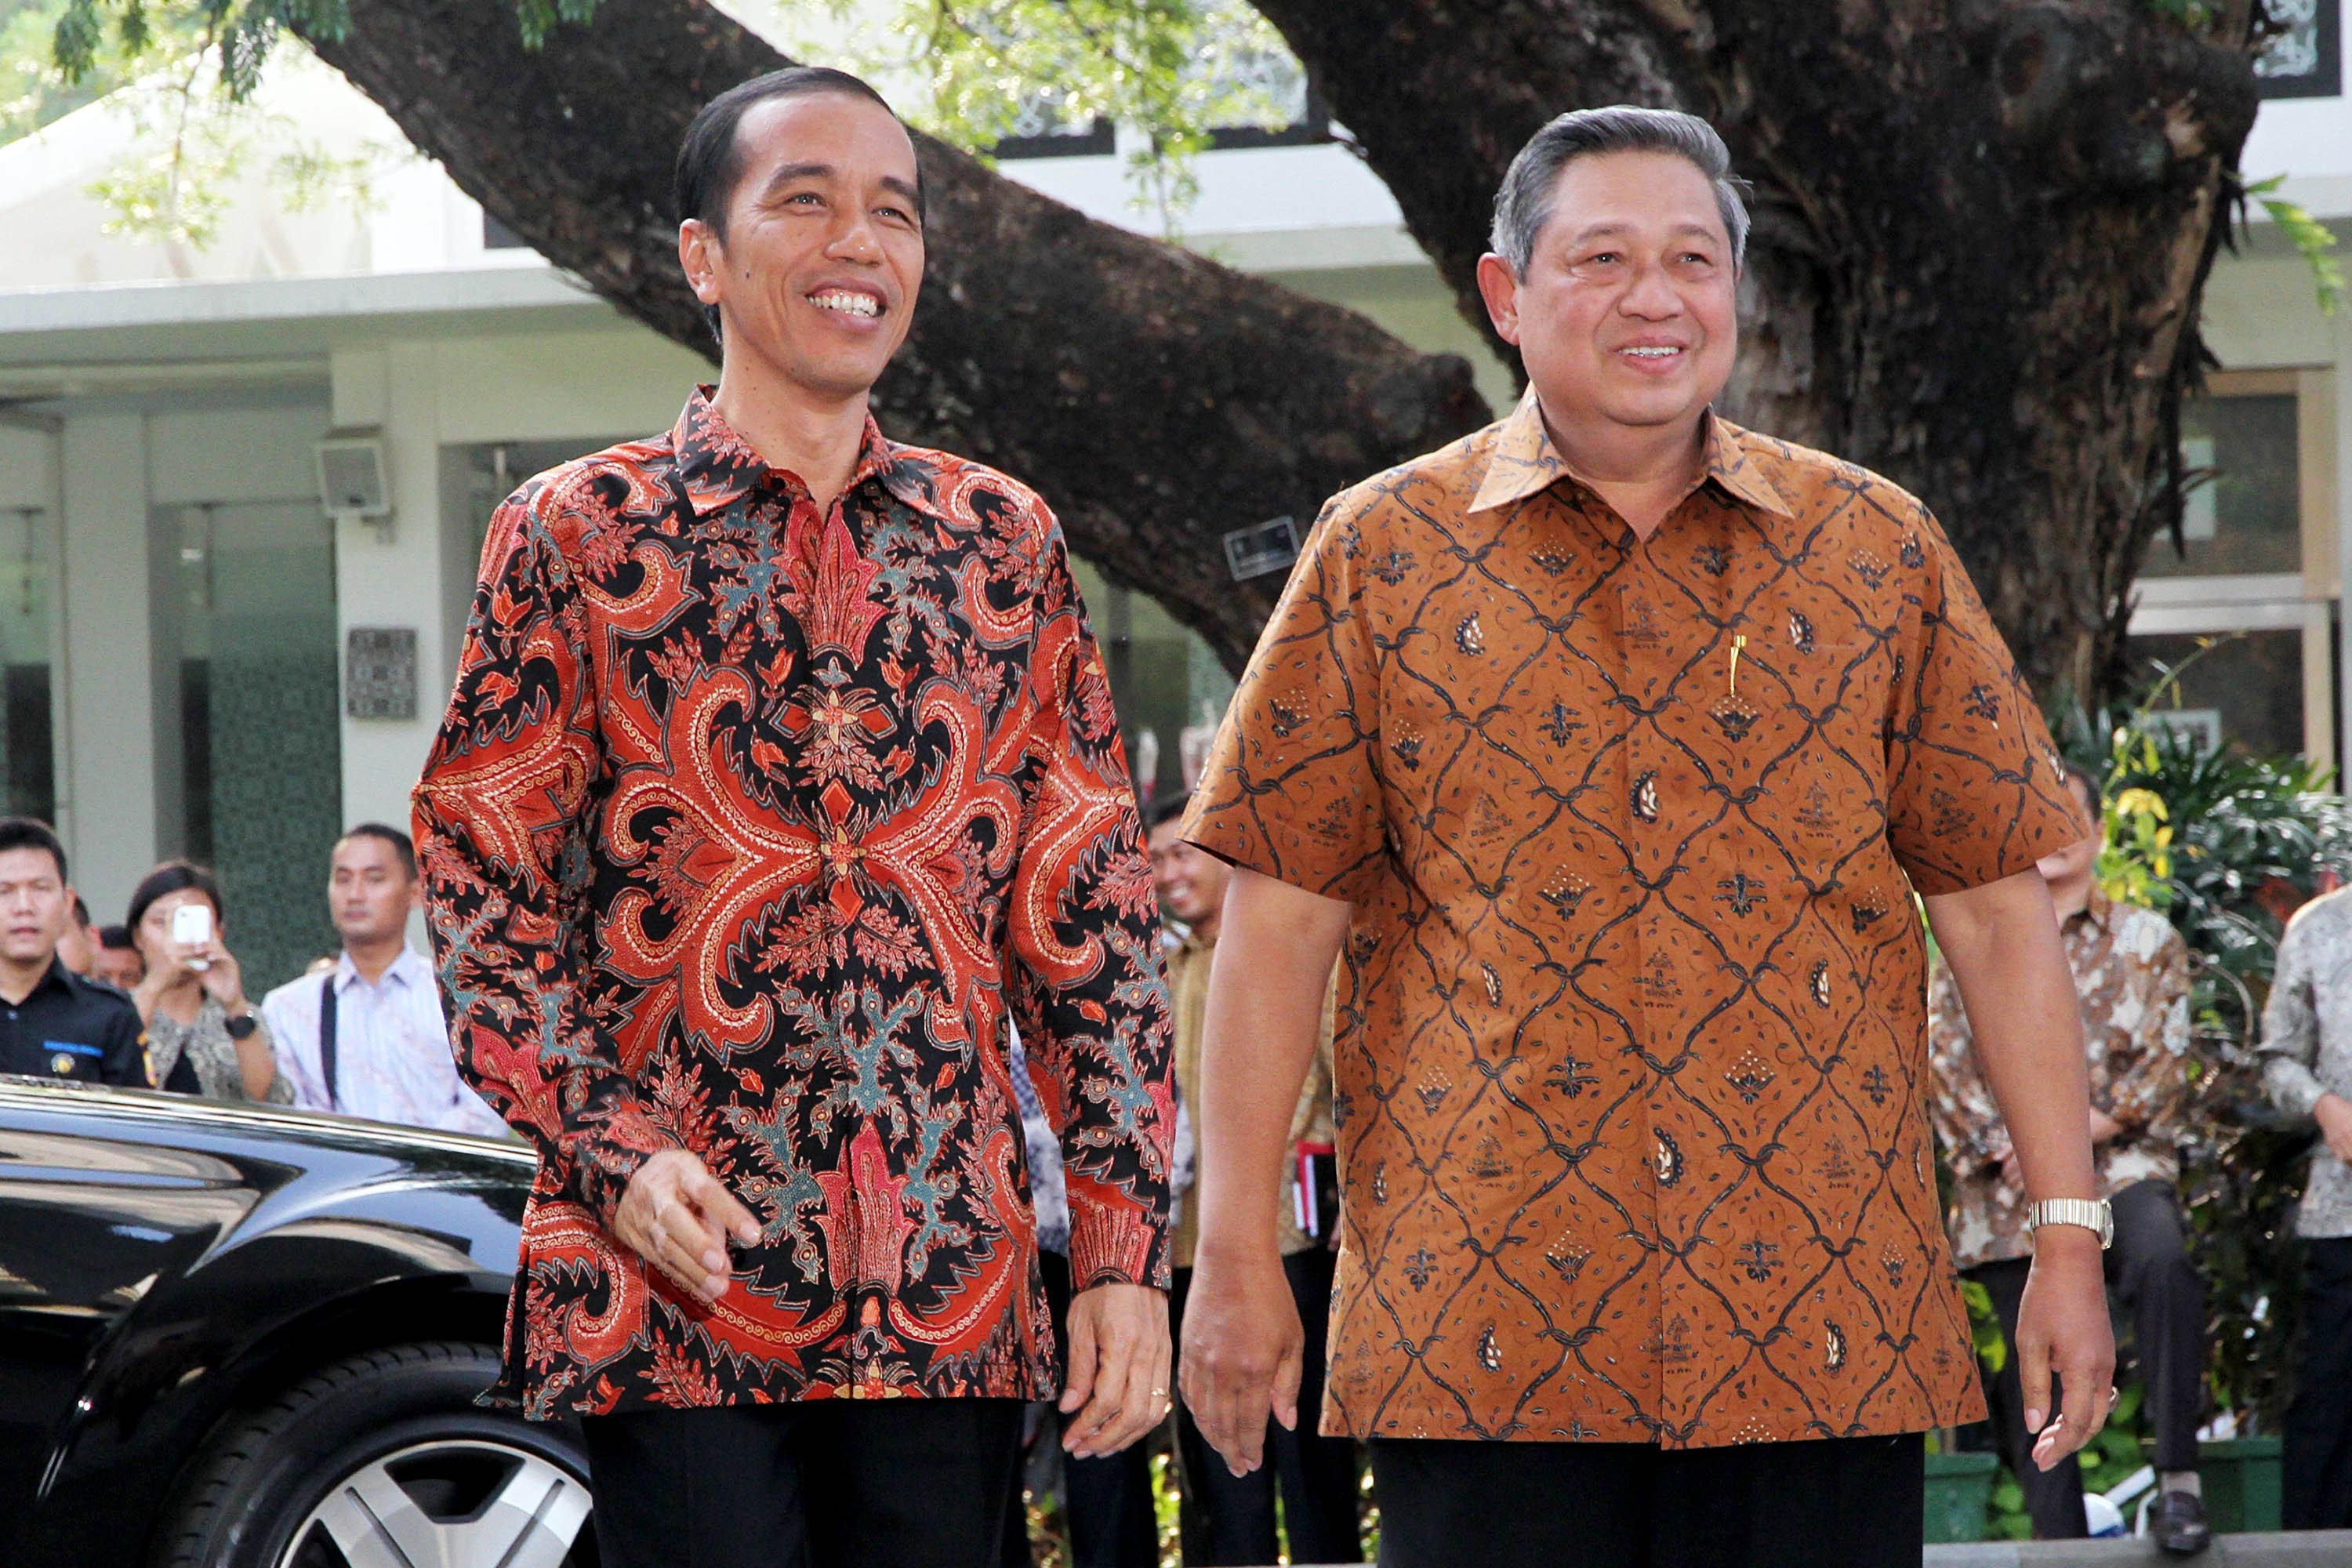 Incoming Indonesian President Joko Widodo, left, is greeted by outgoing president Susilo Bambang Yudhoyono during a visit at the presidential palace in Jakarta, Indonesia, on Oct. 19, 2014.